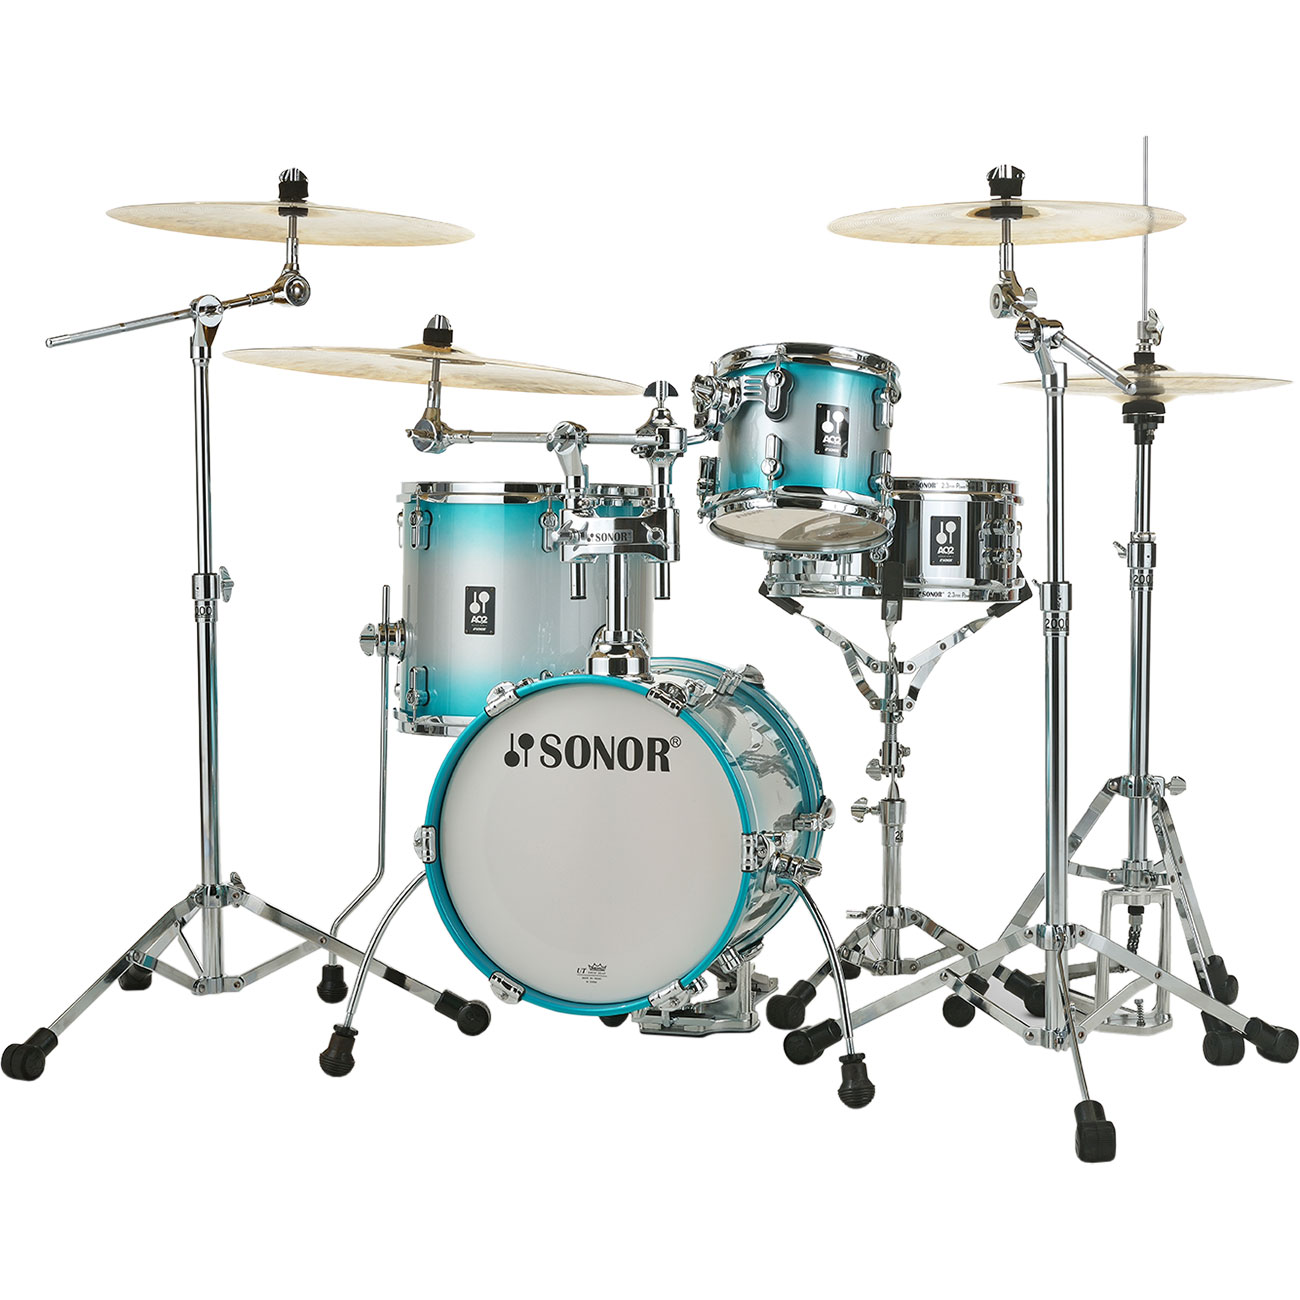 "Sonor AQ2 Martini 4-Piece Drum Set Shell Pack (14"" Bass, 8/13"" Toms, 12"" Snare)"